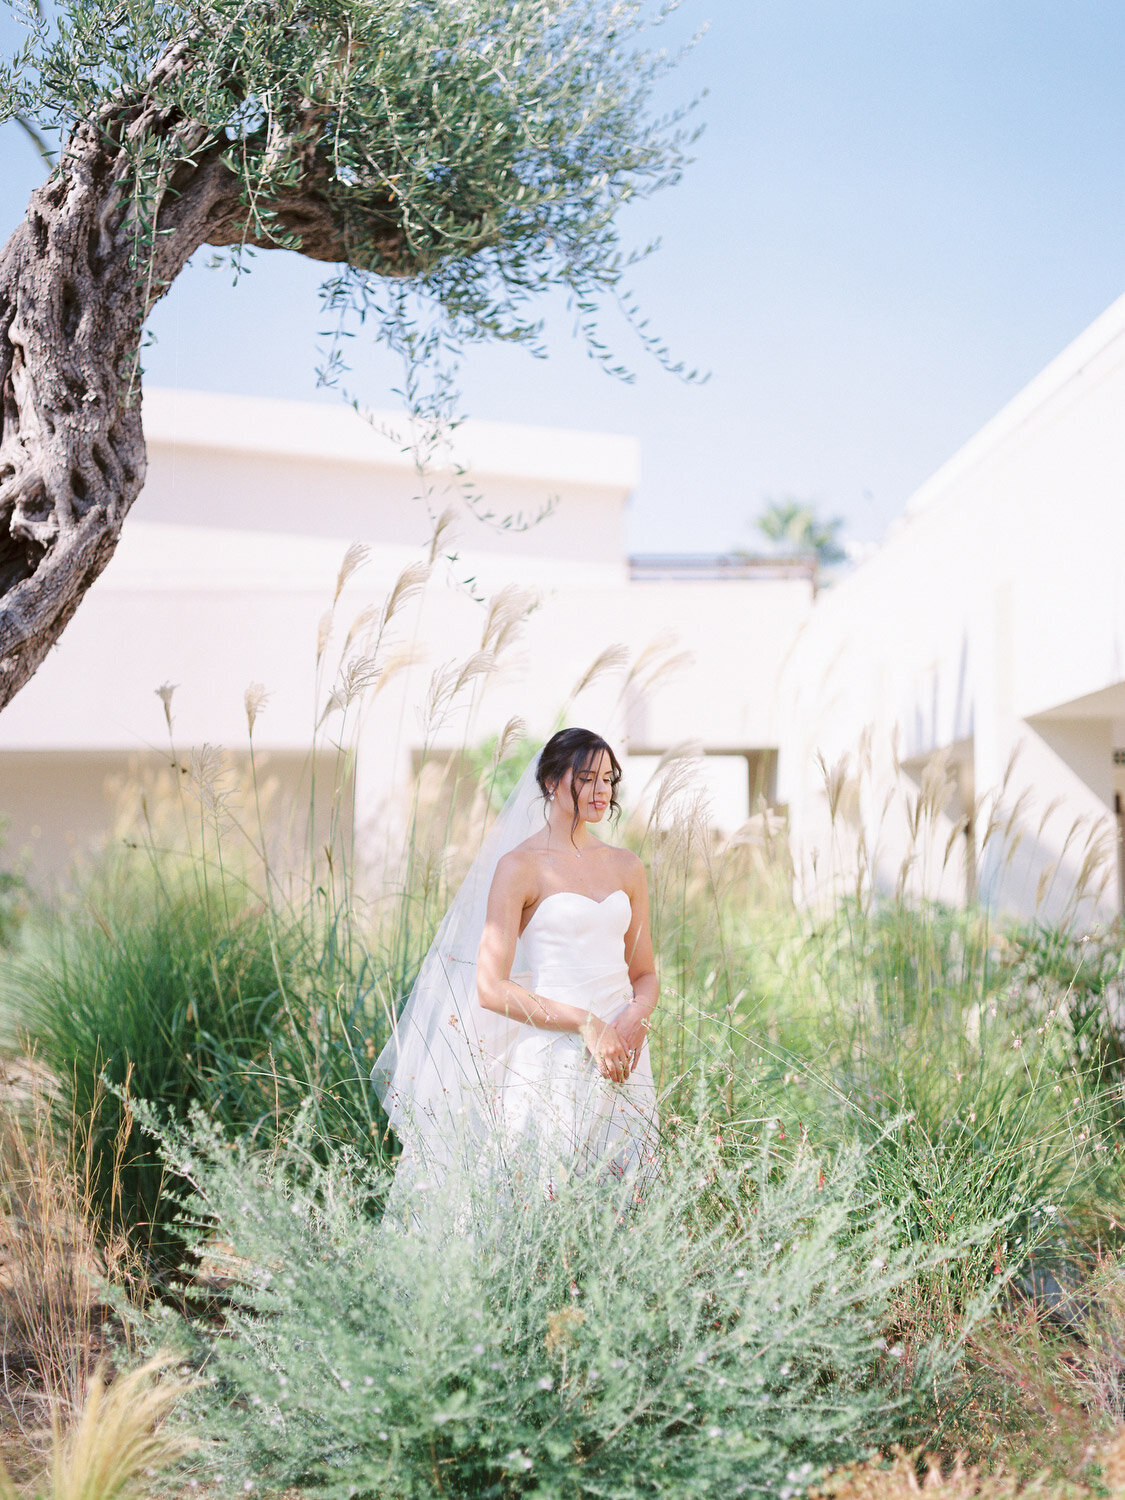 Greece-film-wedding-photography-by-Kostis-Mouselimis_034